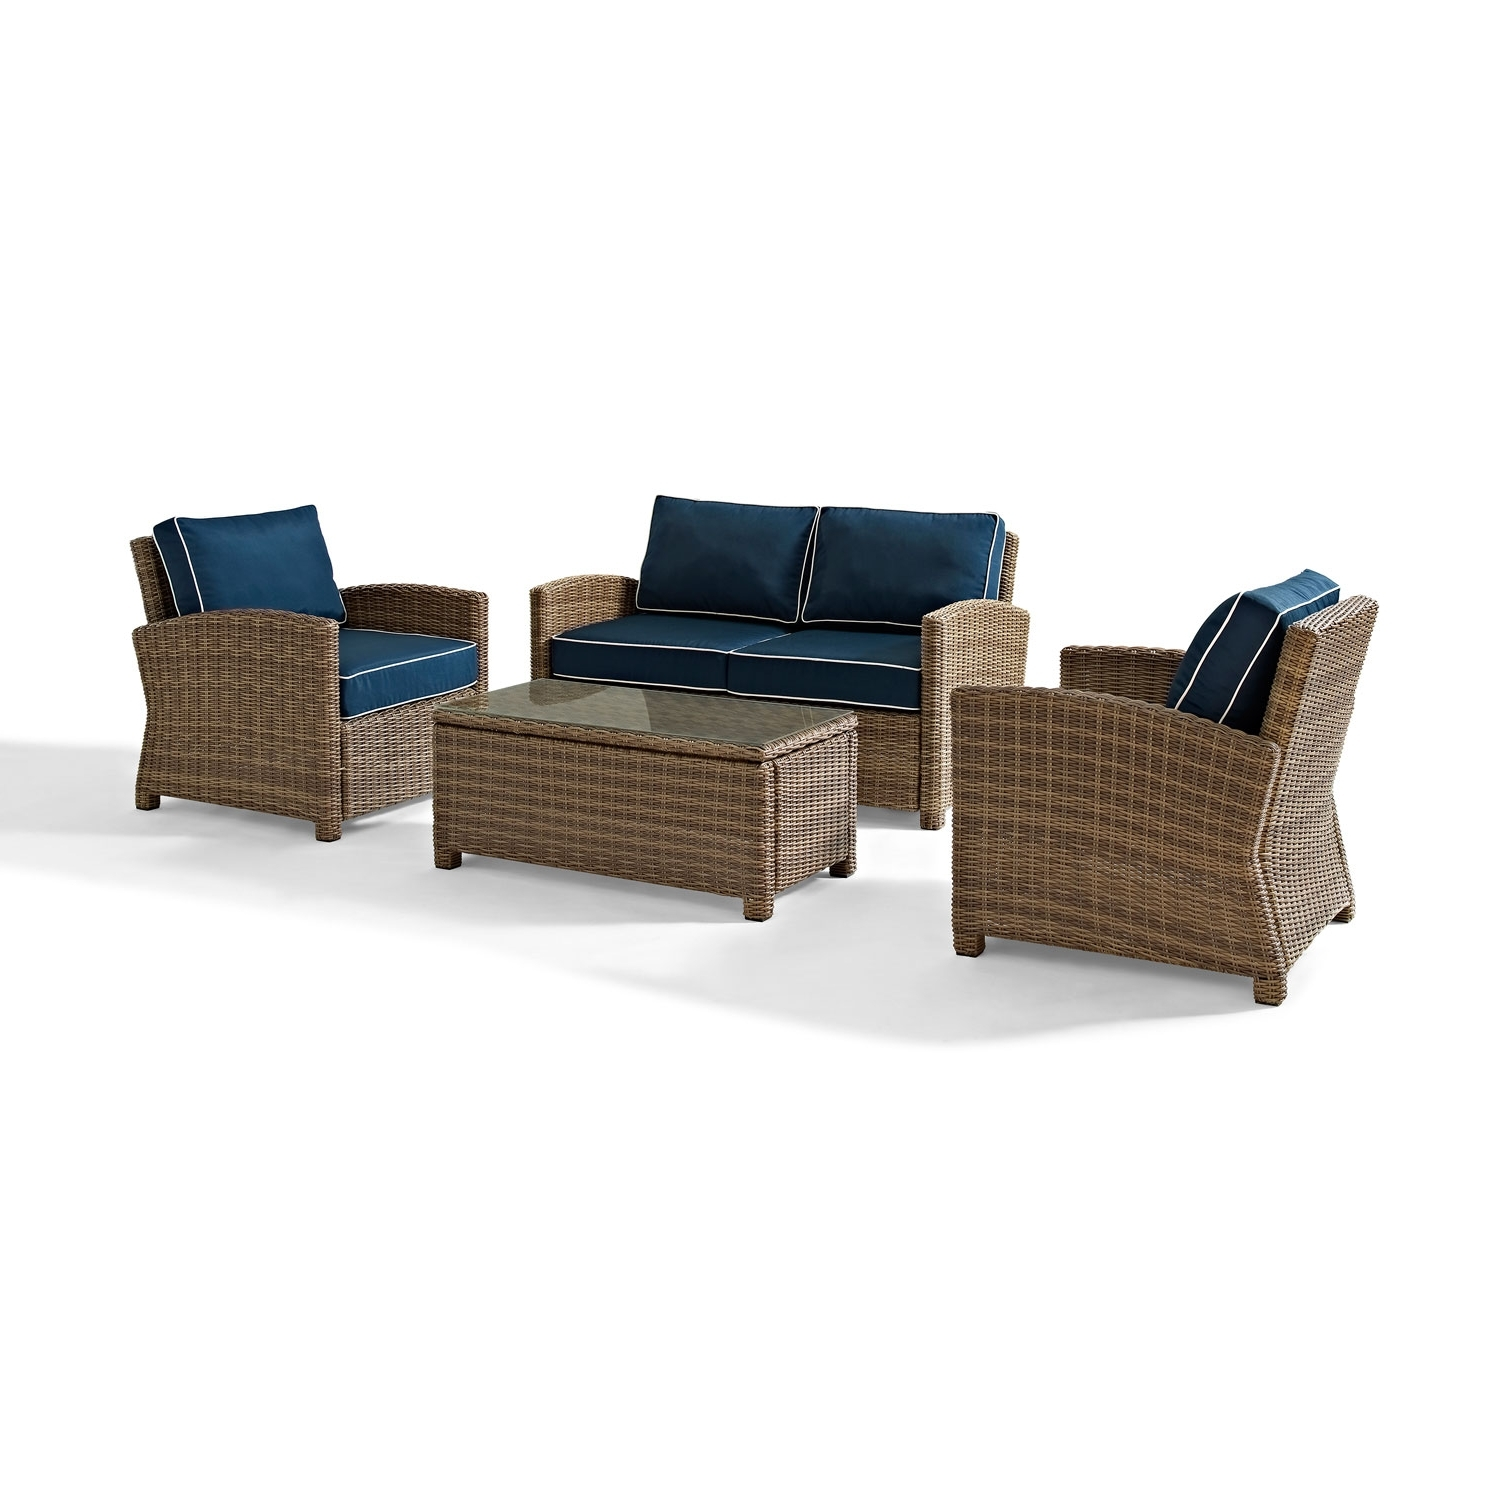 Wicker 4pc Patio Conversation Sets With Navy Cushions Throughout Current Crosley Furniture Bradenton 4 Piece Outdoor Wicker Seating Set With (View 13 of 20)